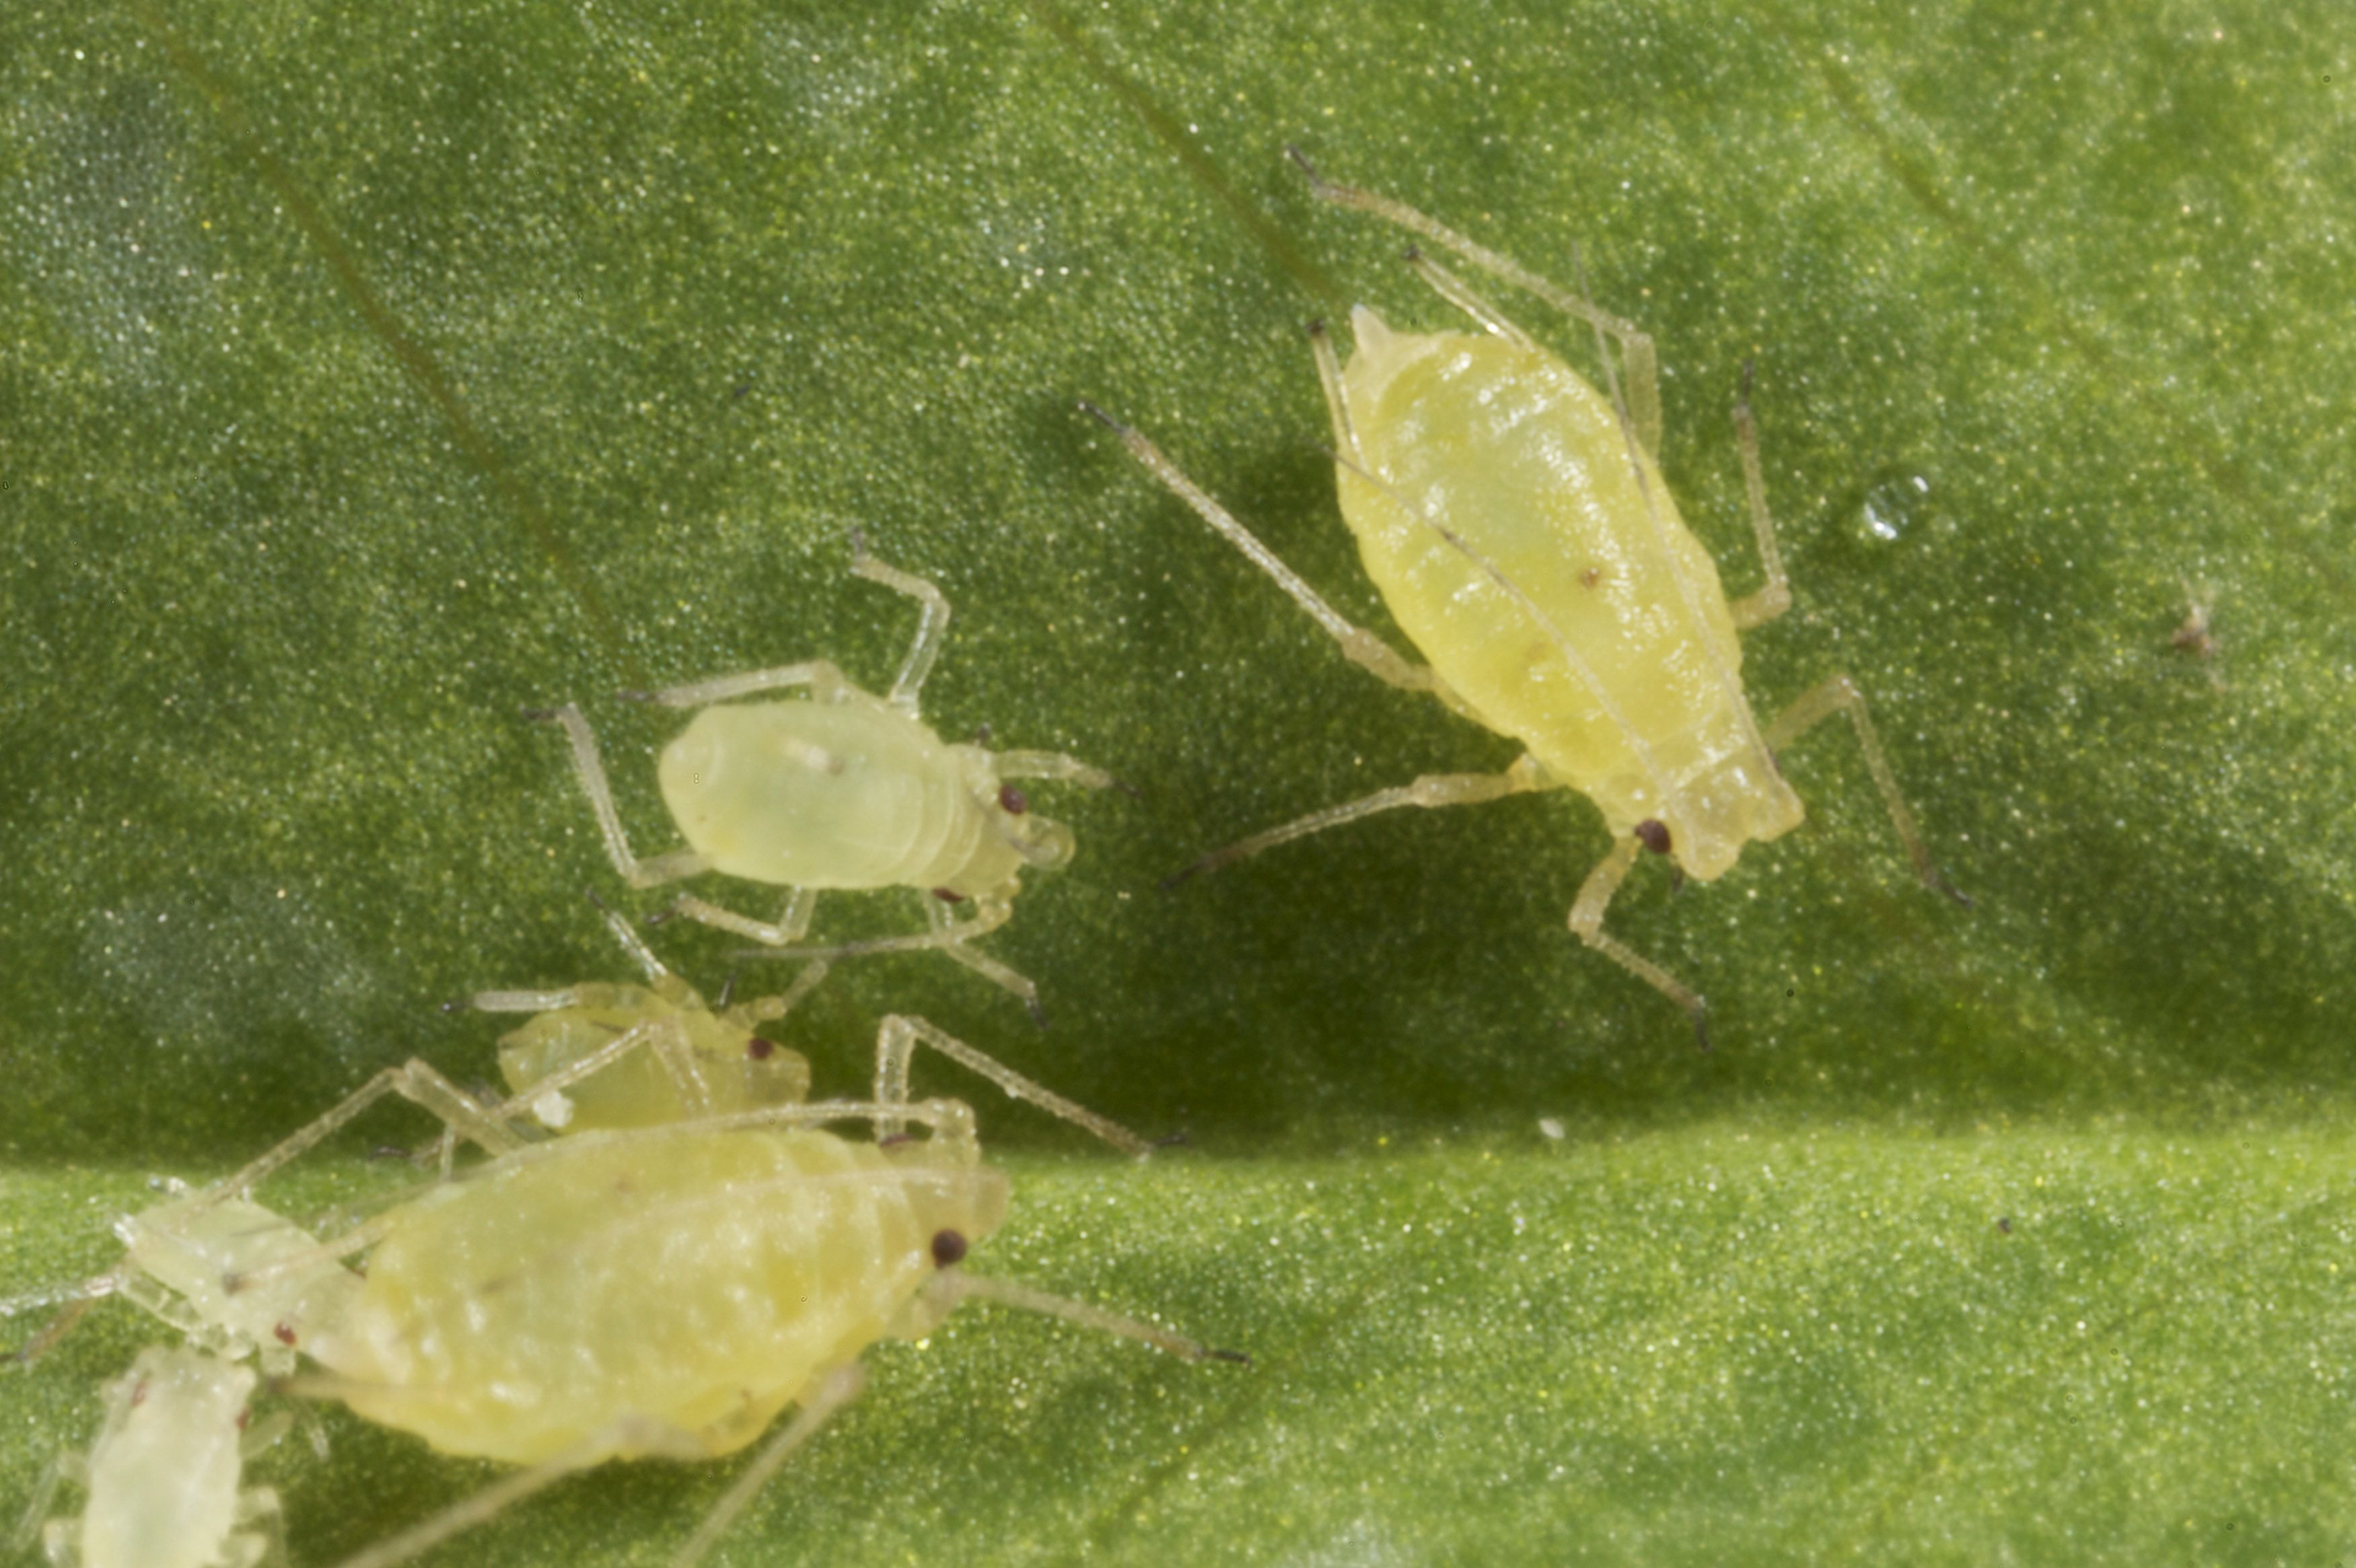 Australia: Green peach aphid confirmed resistant to neonicotinoid insecticides